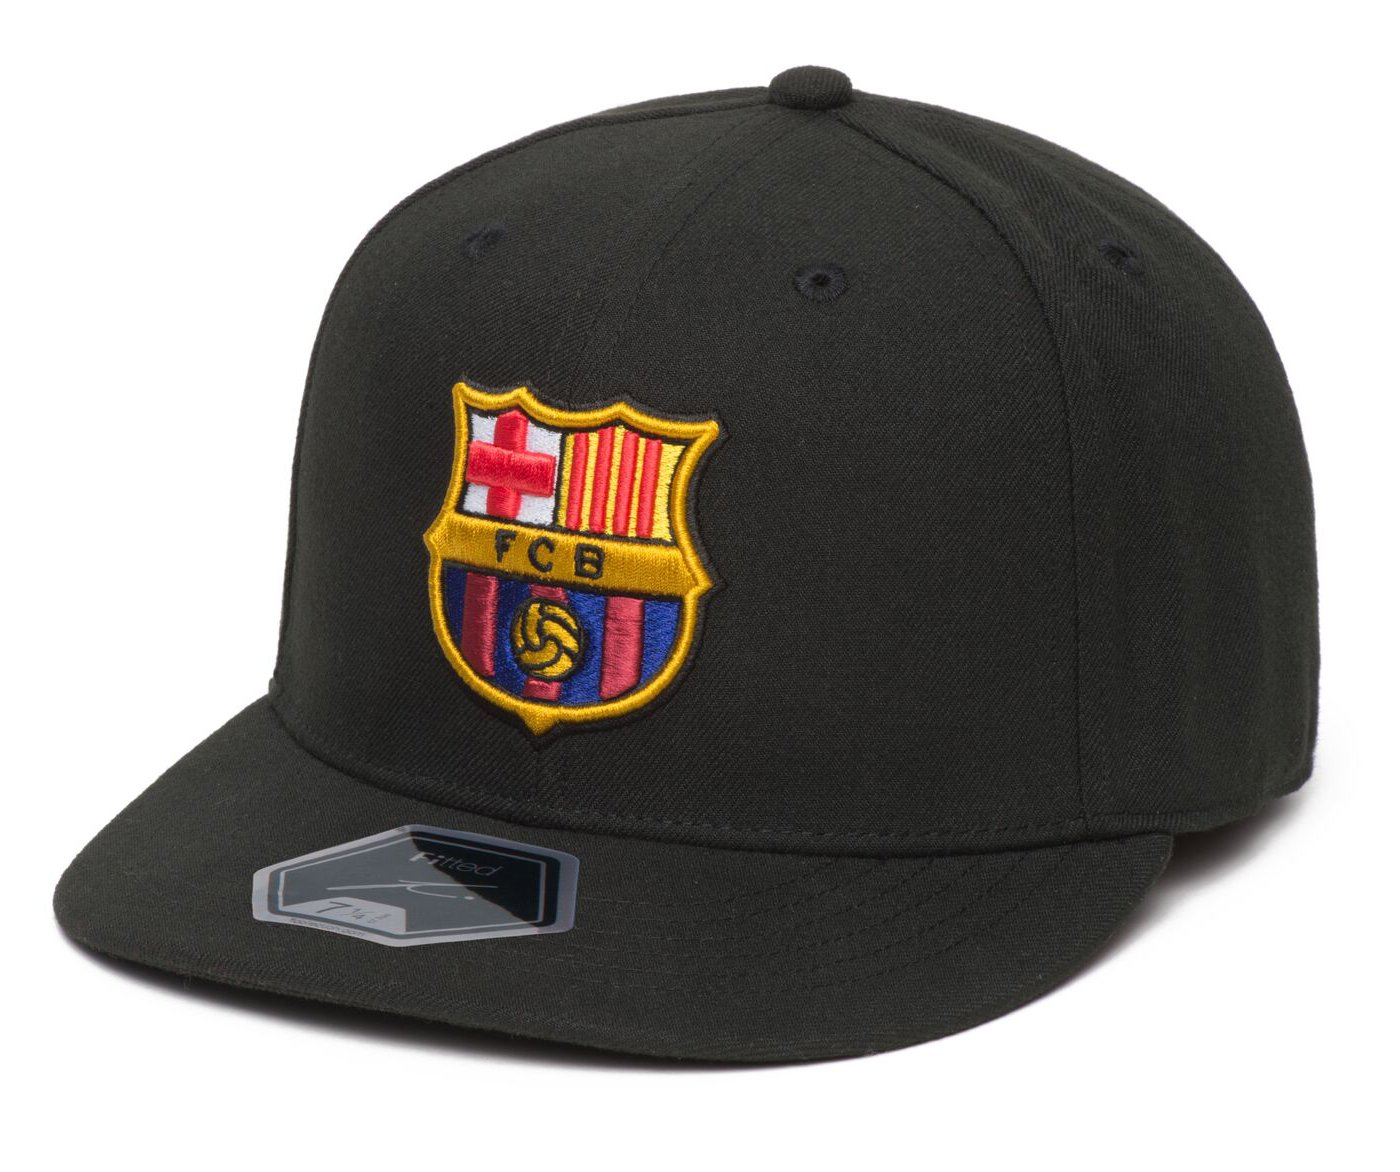 a6ffeb7704 Amazon.com   Fi Collection FC Barcelona Officially Licensed Fitted Dawn Cap  (7 1 2 (59.6cm))   Sports   Outdoors